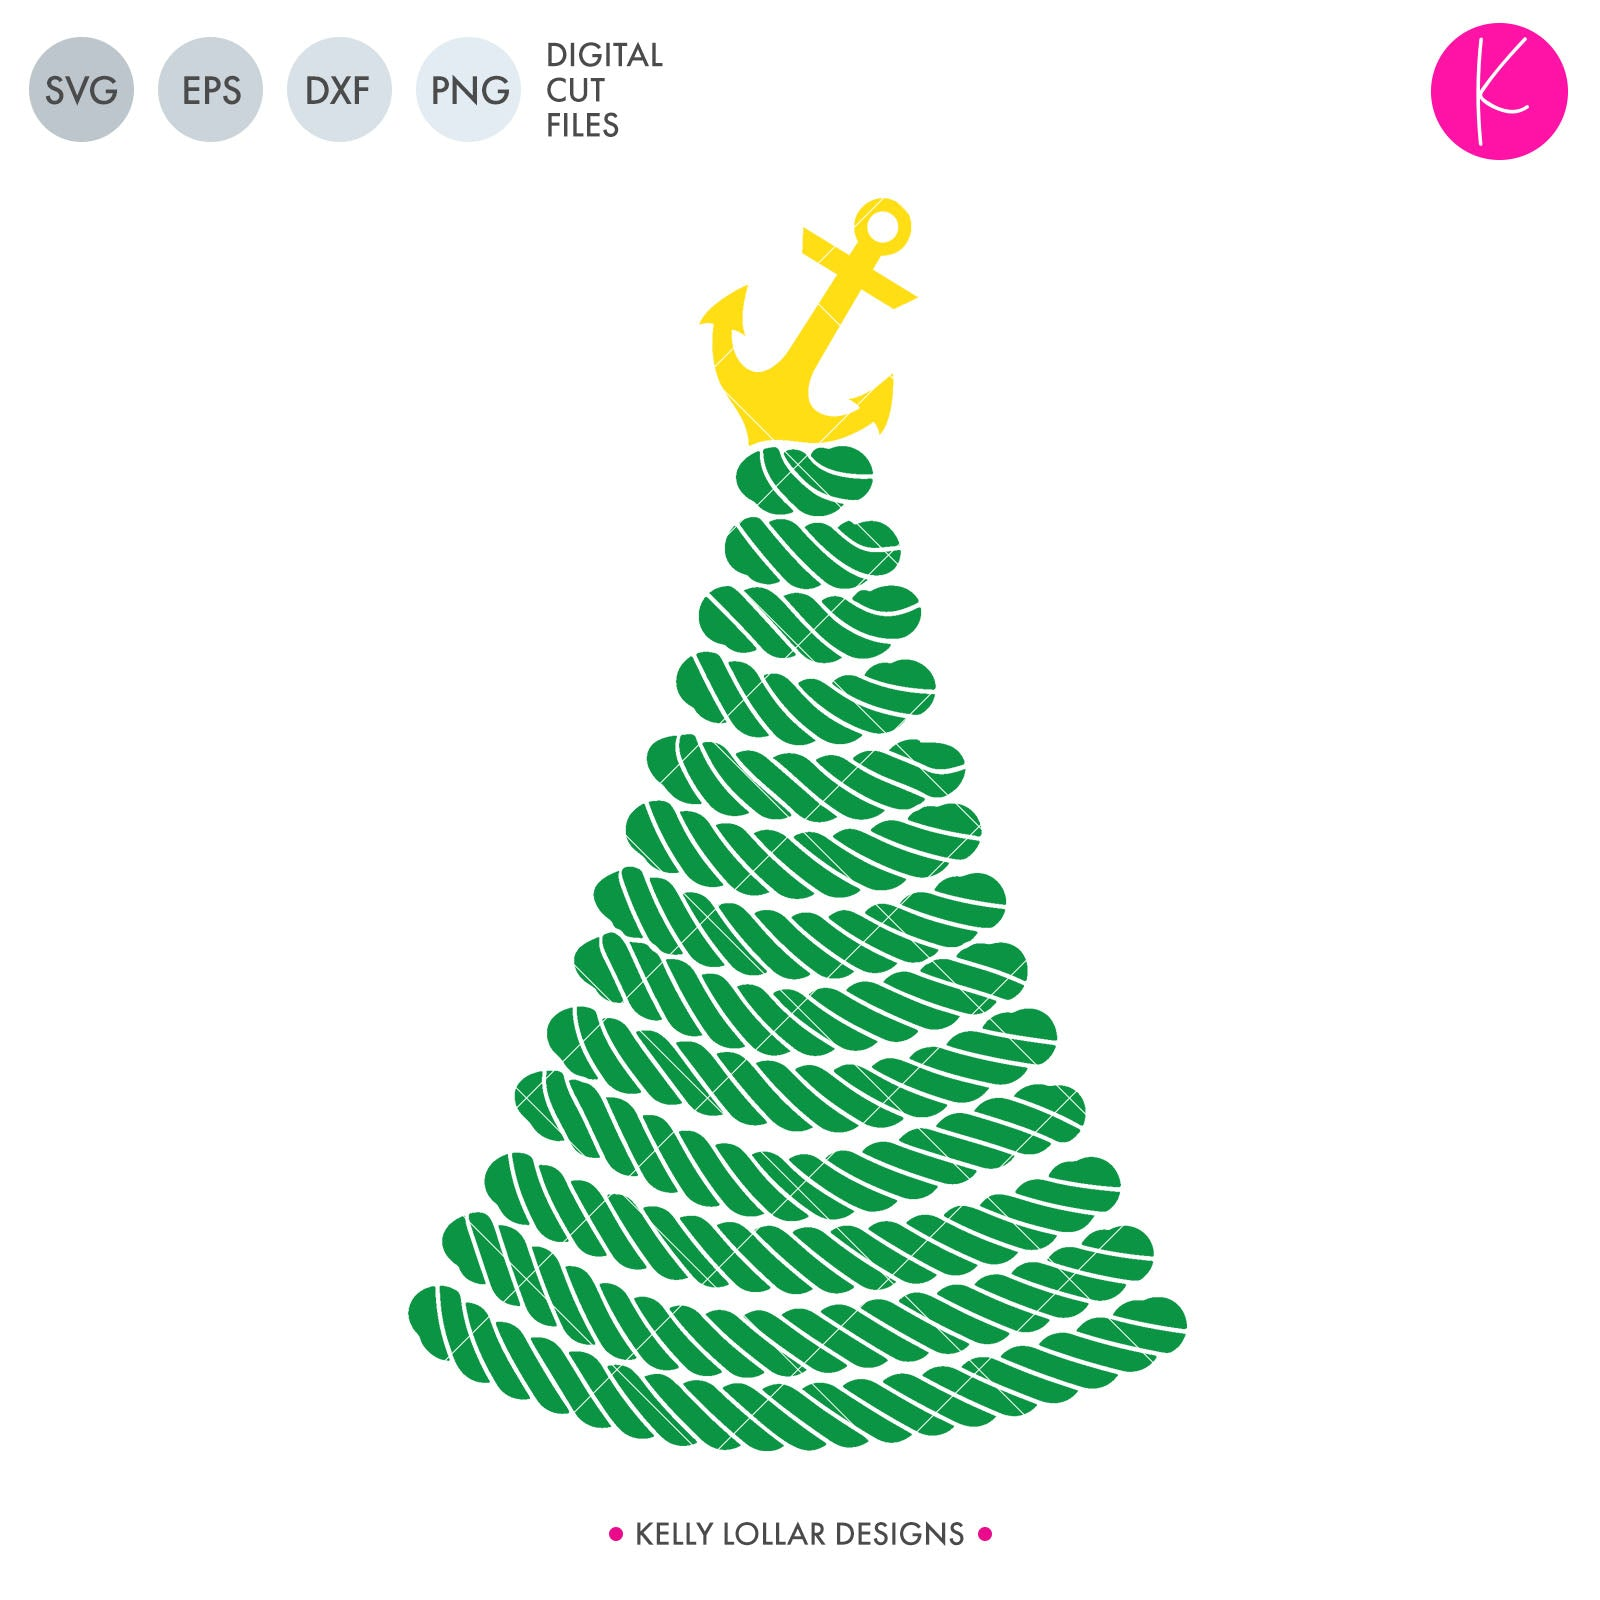 Nautical Christmas Tree | SVG DXF EPS PNG Cut Files Rope Christmas Tree Topped with an Anchor for Nautical Themed Christmas Decor and Designs | SVG DXF PNG Cut Files 1 file for each format welded as 2 pieces anchor